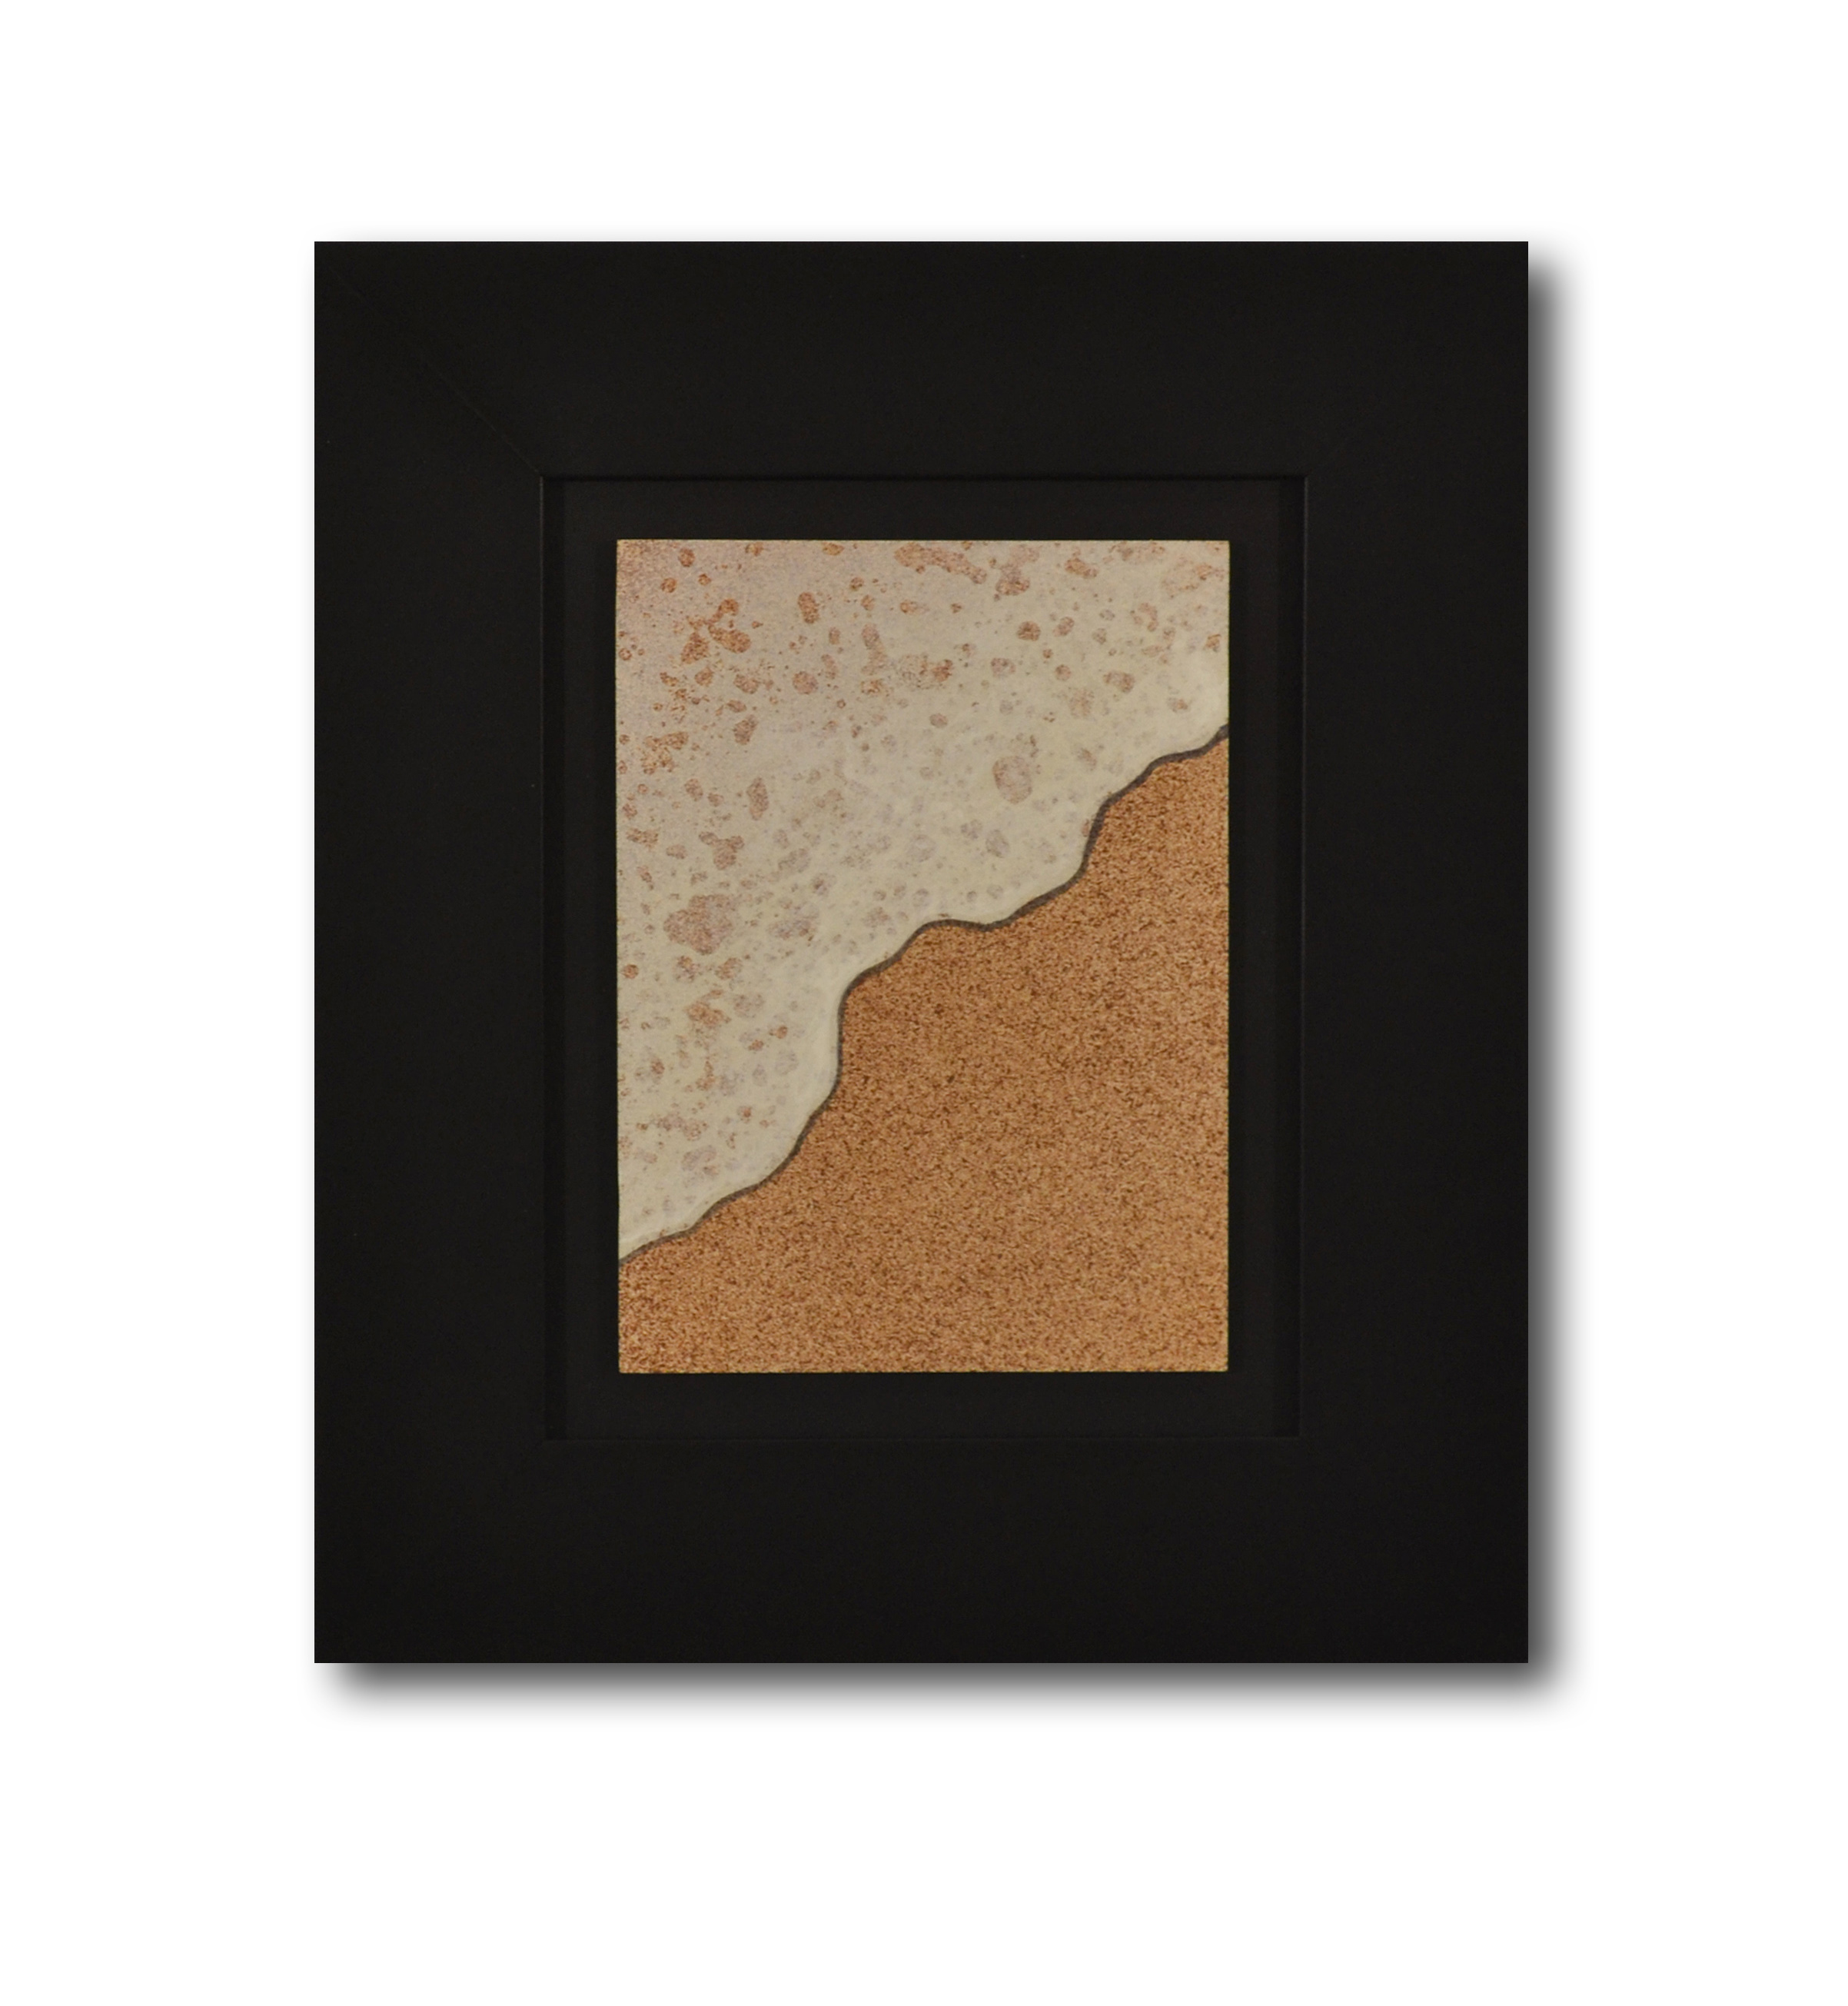 """Title: Dune 3 Artist: Mark Travers Year: 2011 Medium: Oil and acrylic on panel Size: 12"""" x 14"""" (including frame)"""